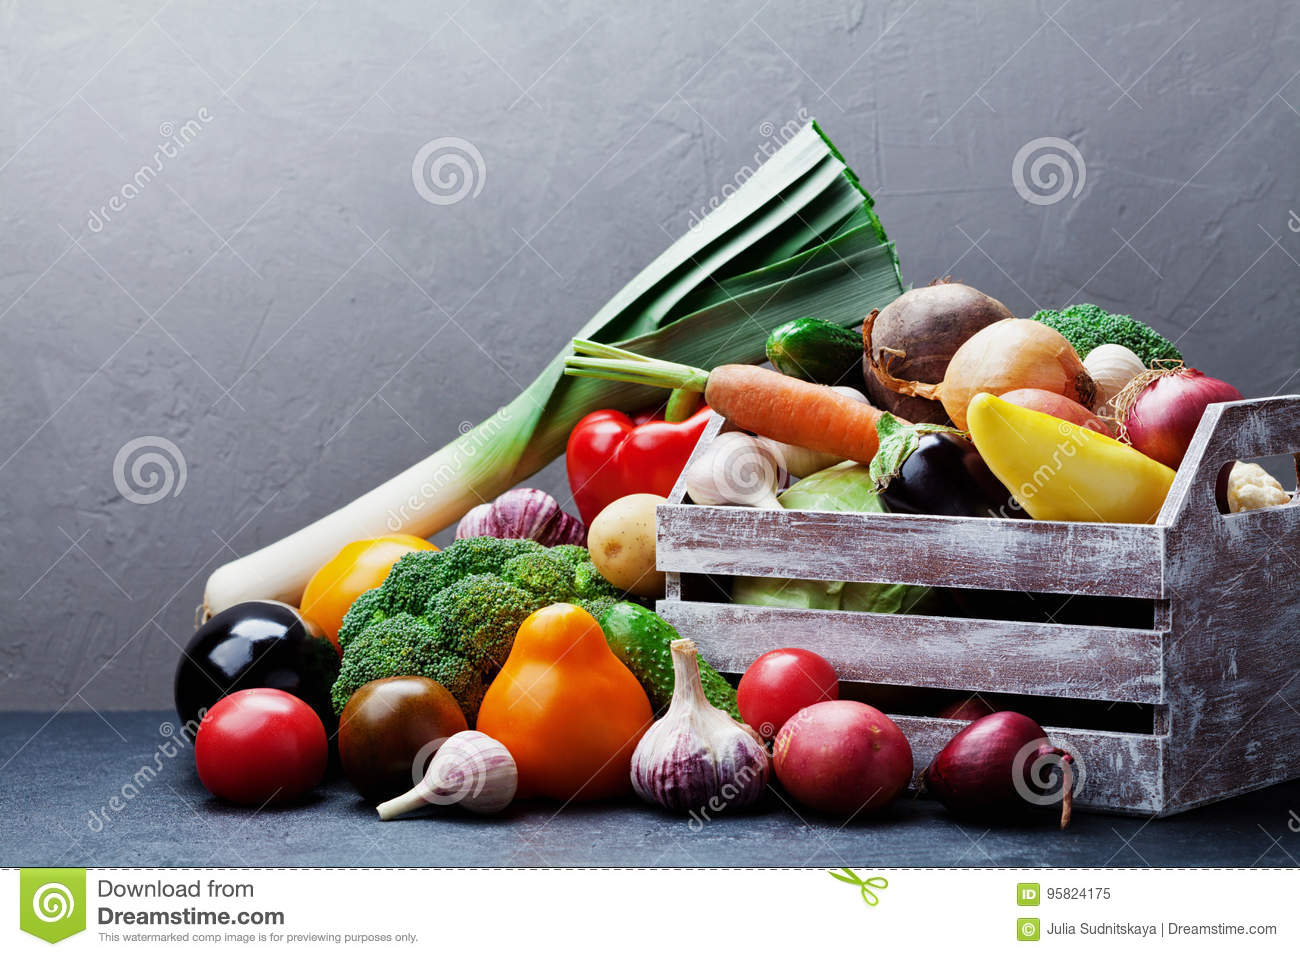 Wooden box with autumn harvest farm vegetables and root crops on dark kitchen table. Healthy and organic food.